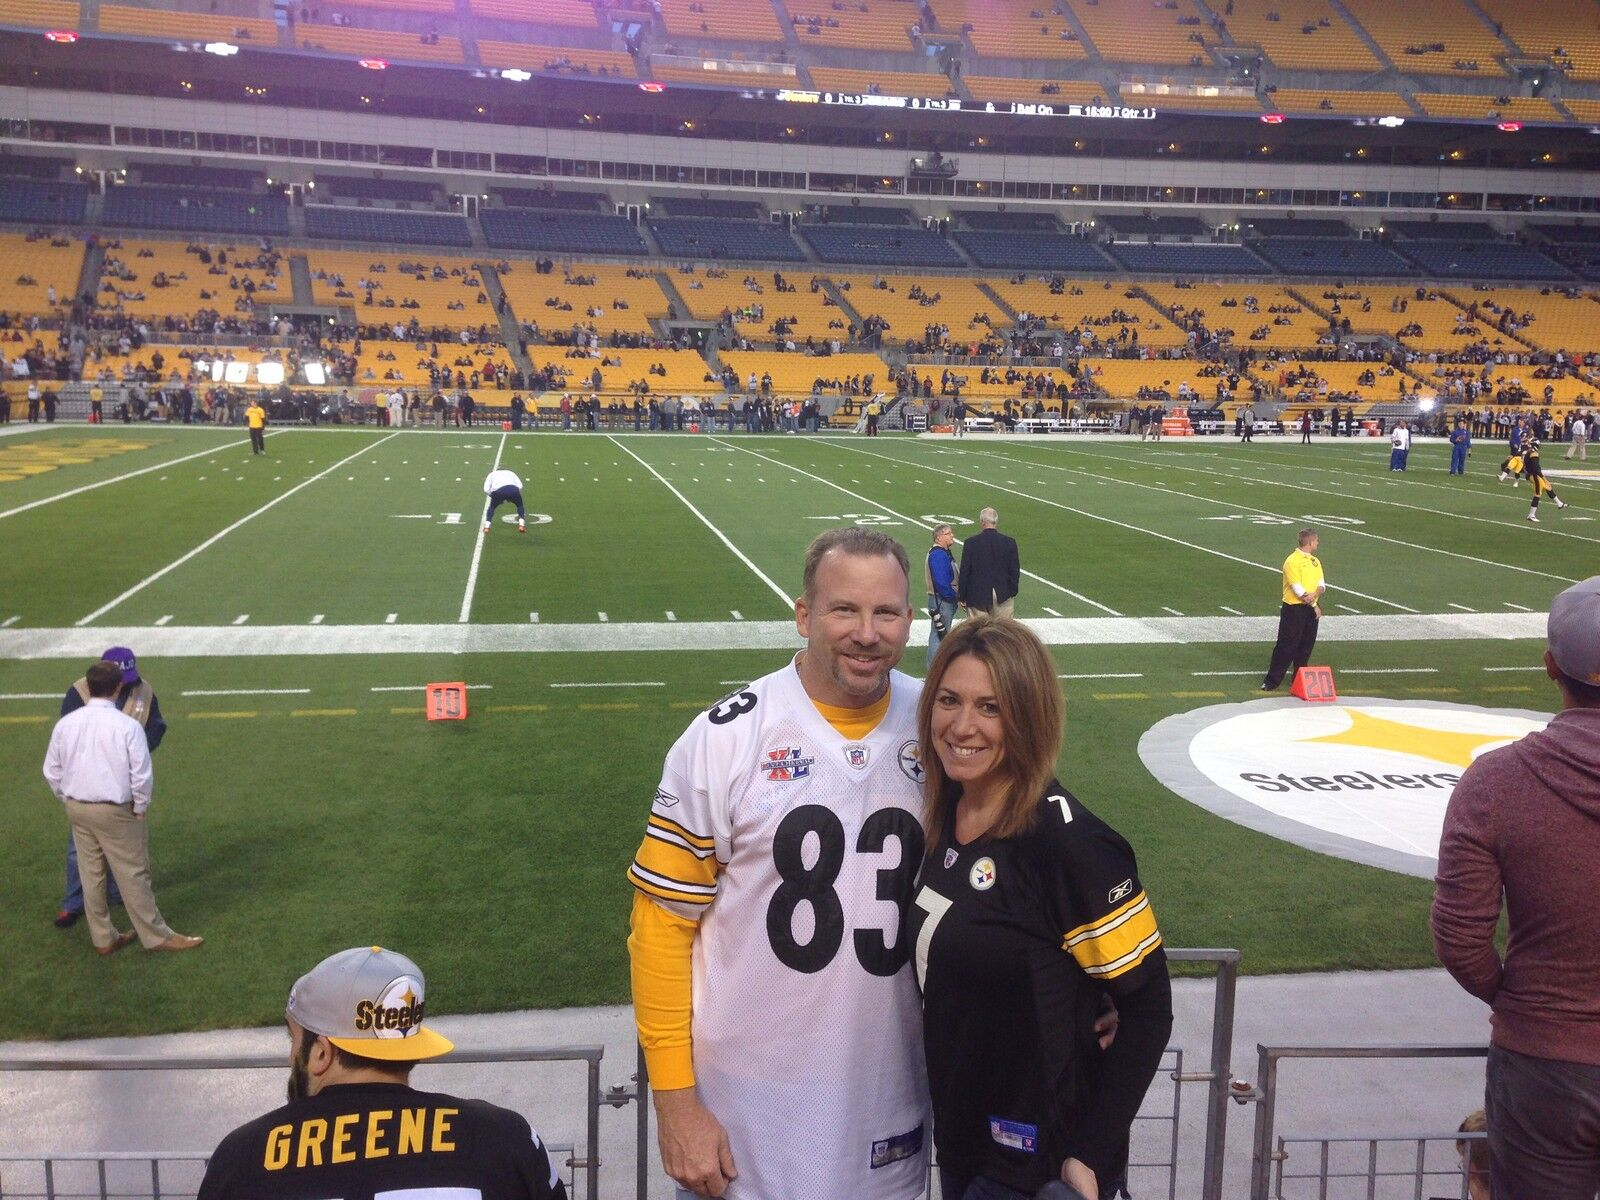 Steelertickets4u